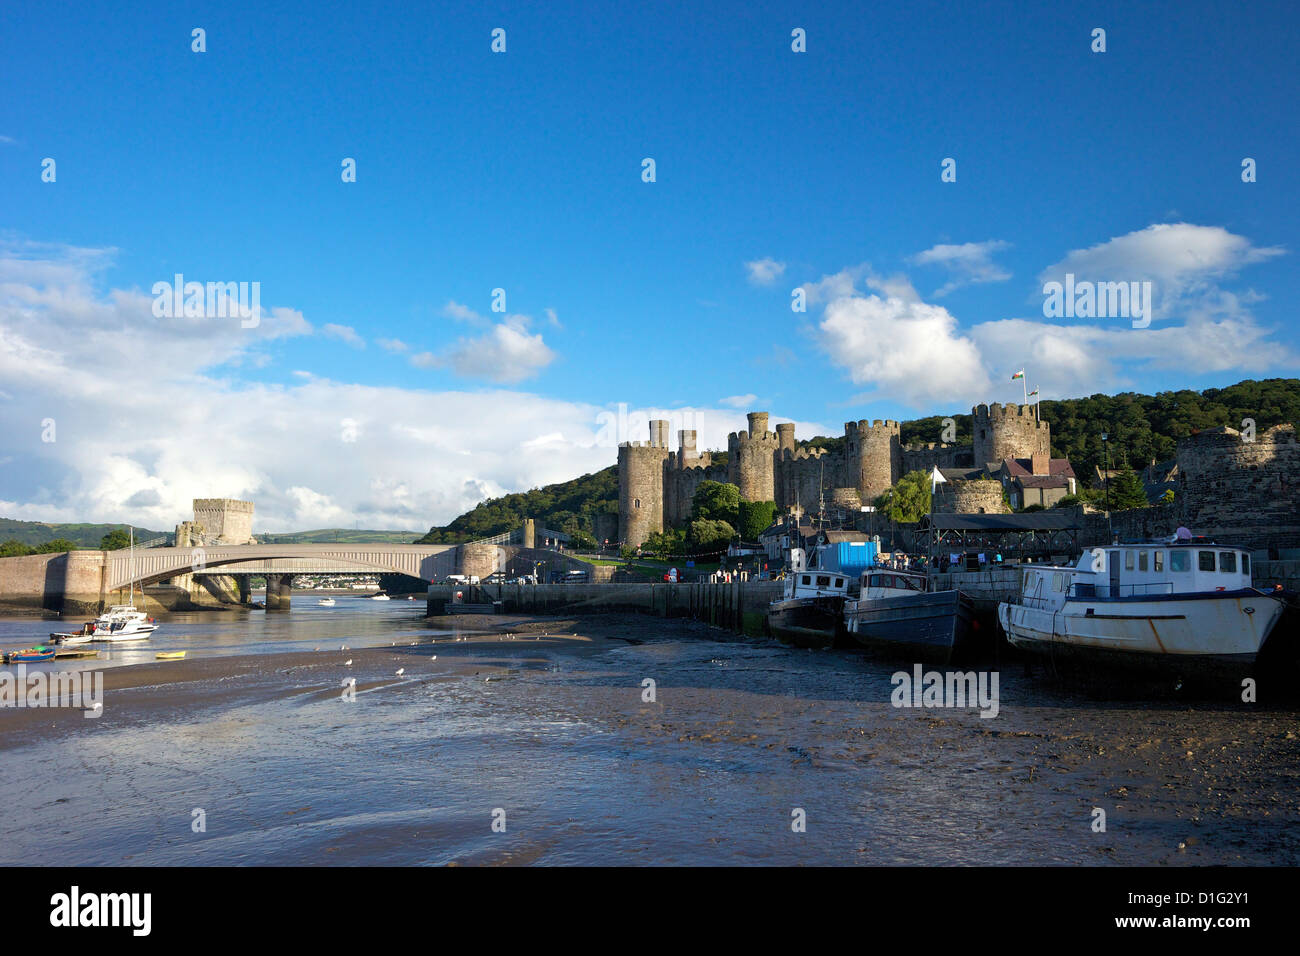 River Conwy estuary and medieval castle in summer, UNESCO World Heritage Site, Gwynedd, North Wales, United Kingdom, - Stock Image